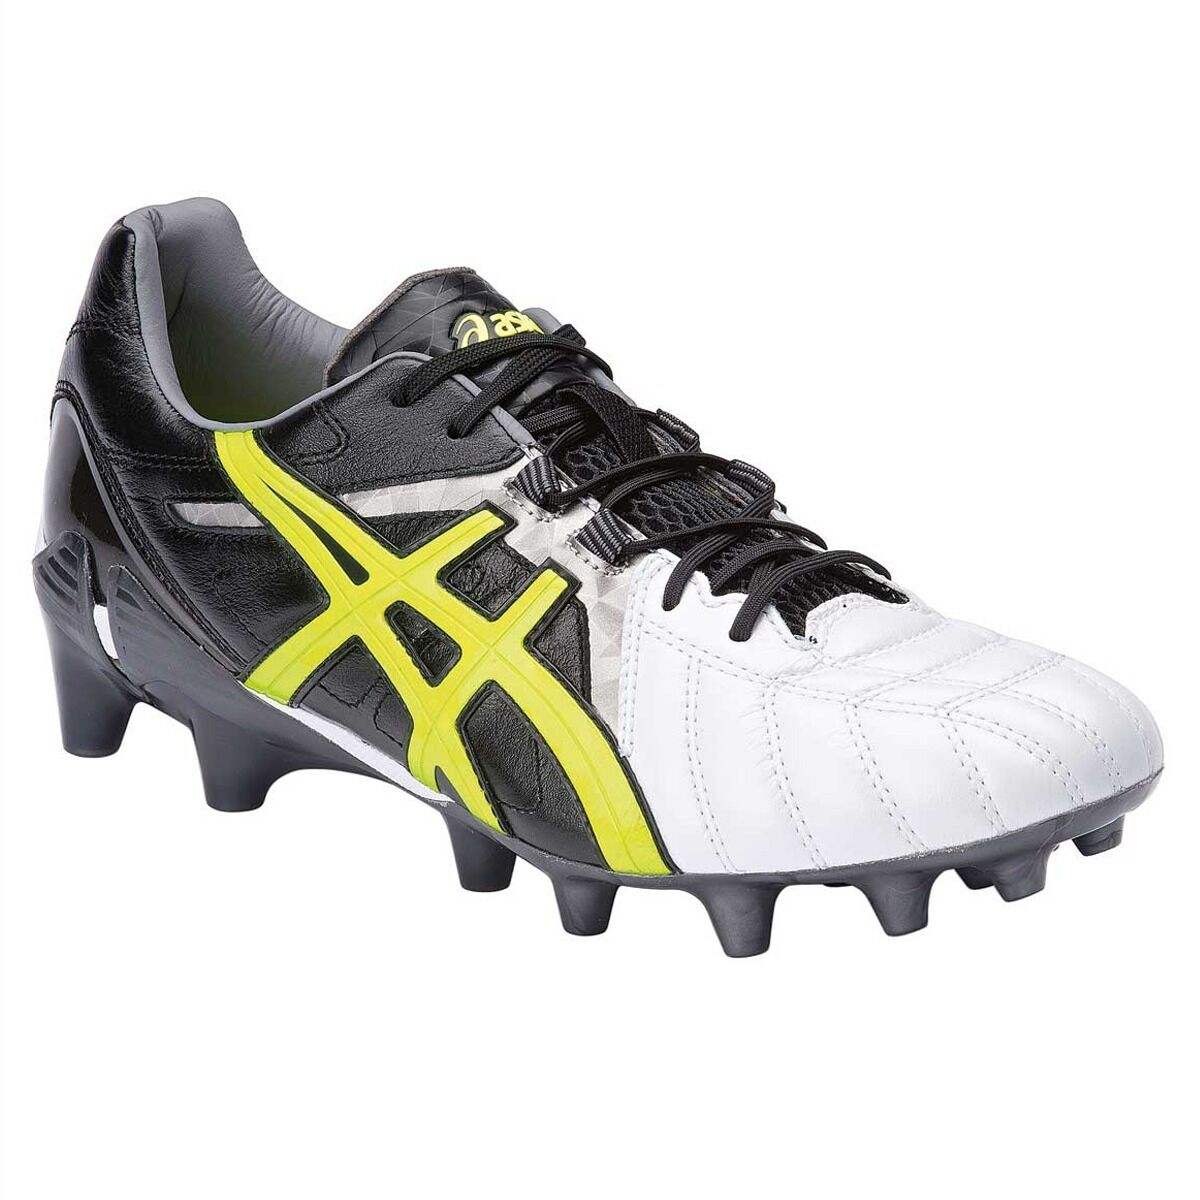 Asics Gel Lethal Tigreor 8 IT Football Stiefel (0189) + FREE AUS DELIVERY